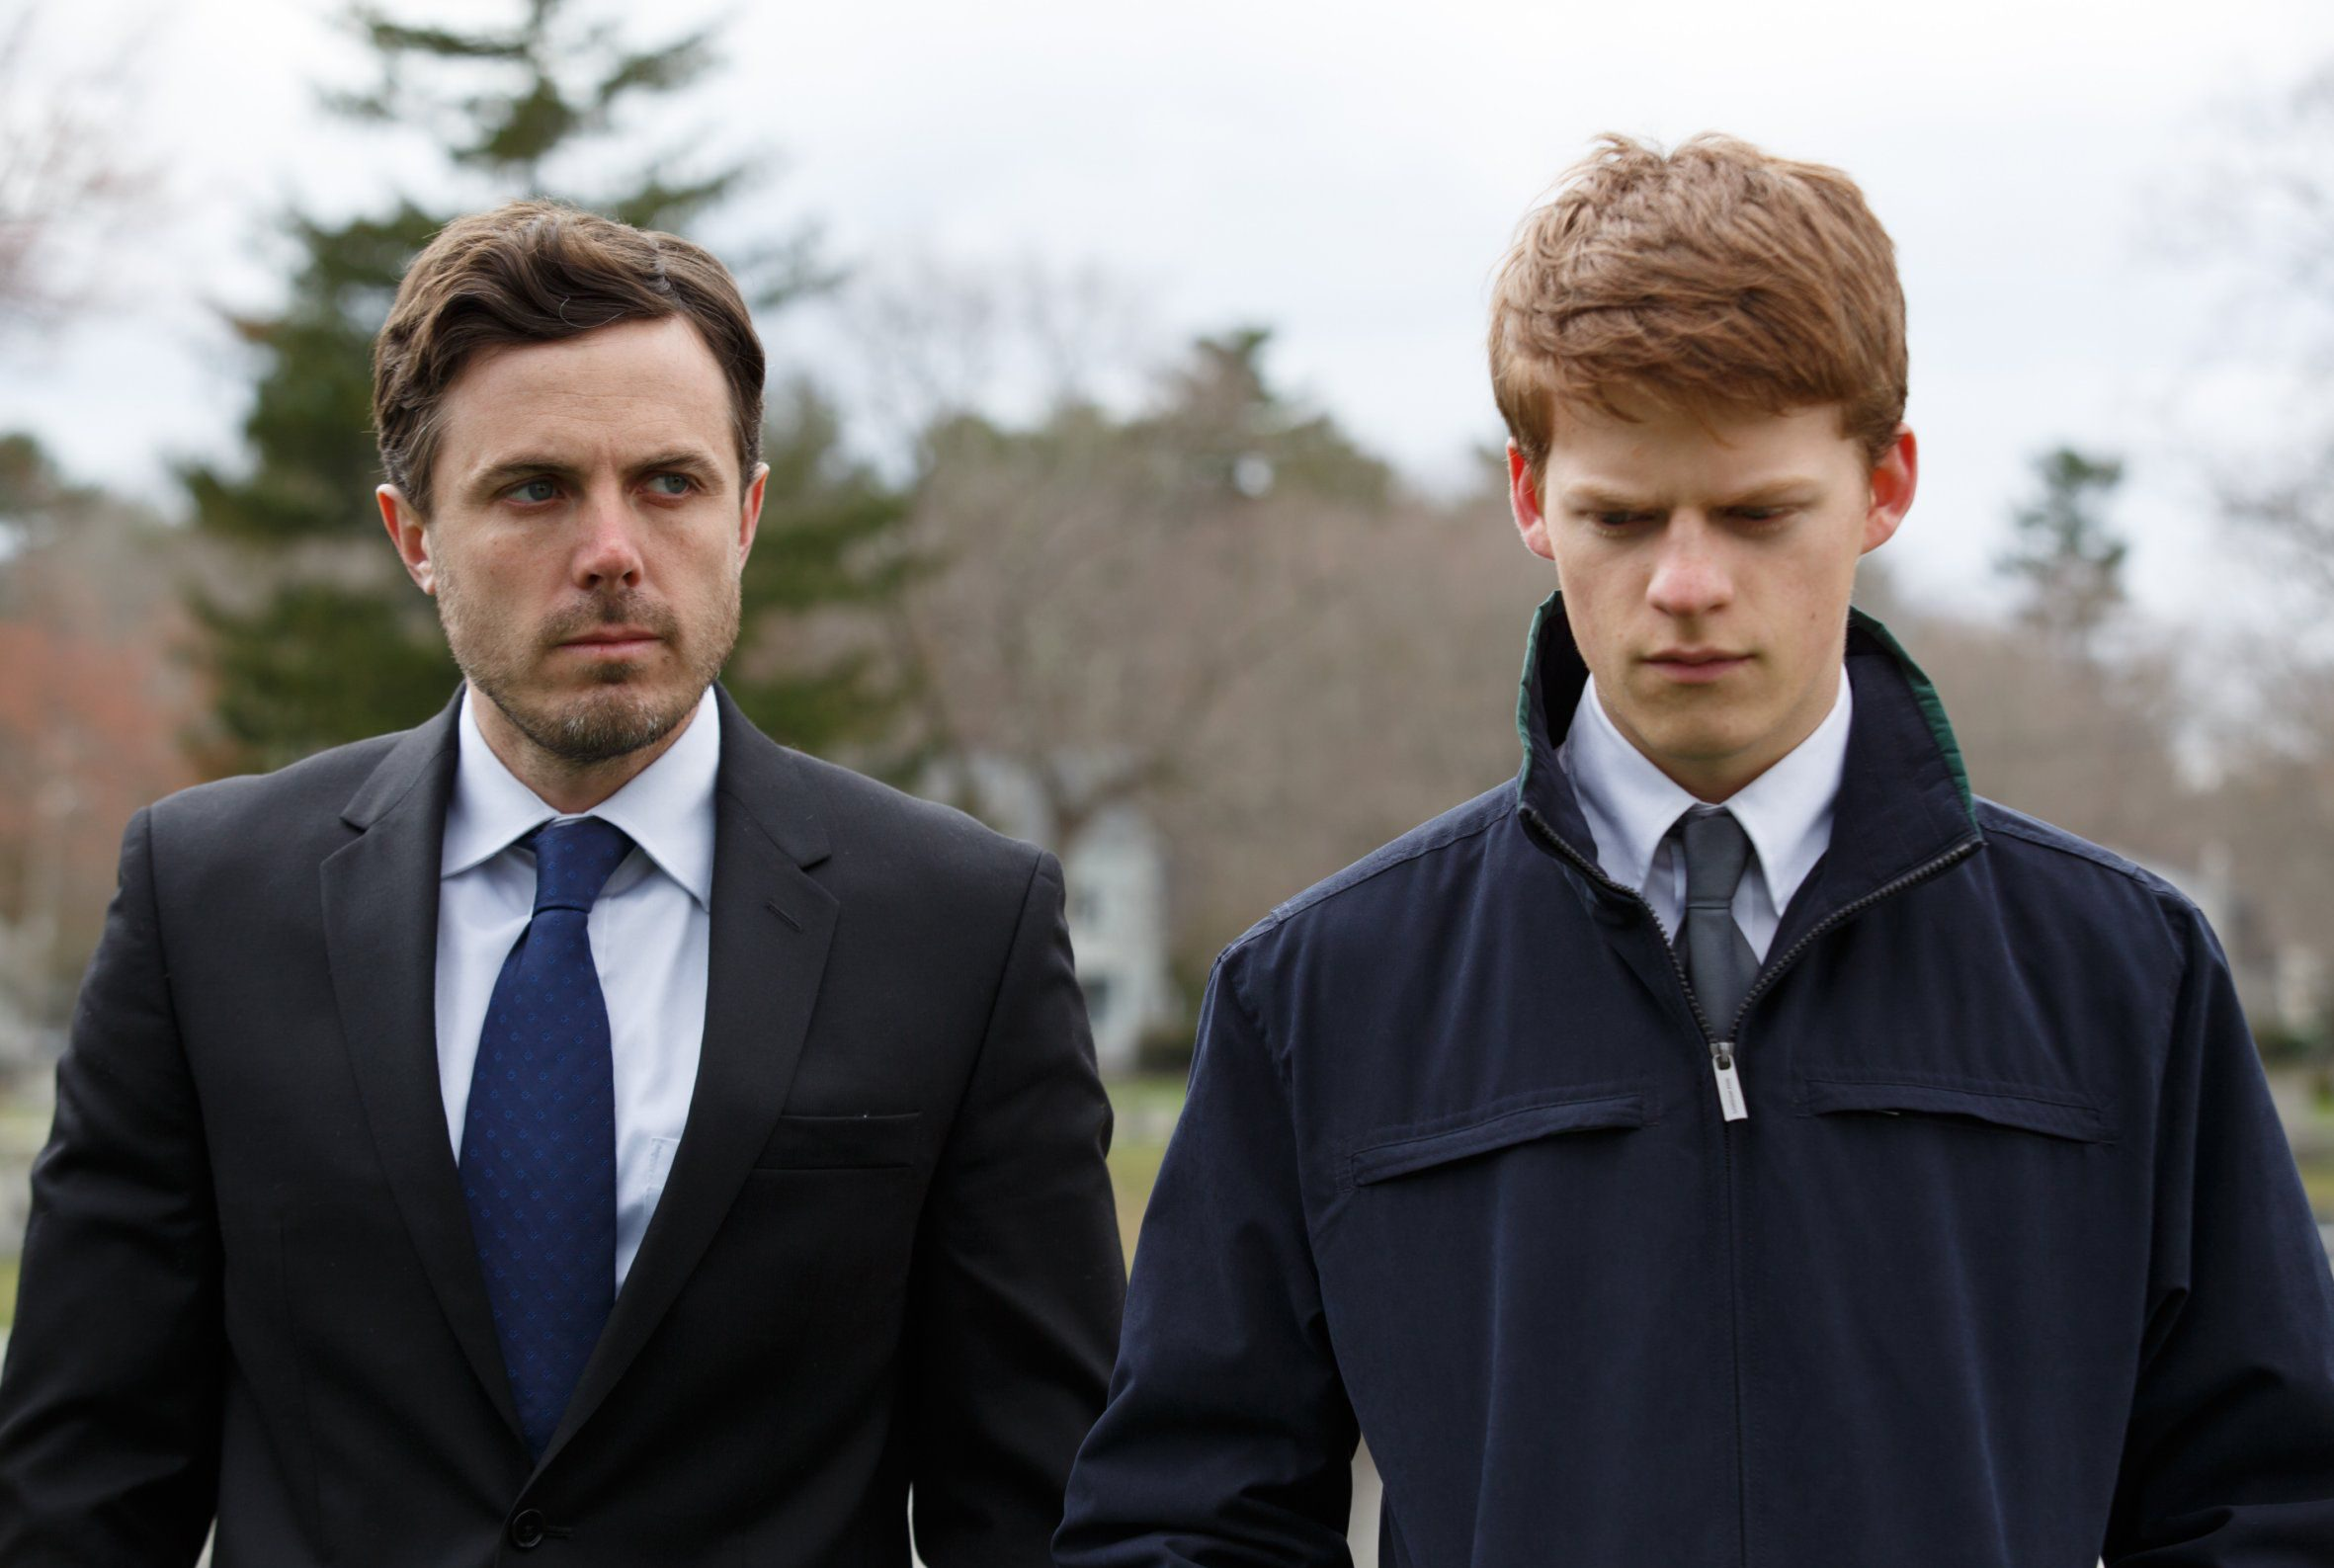 An entire town will get Amazon Prime free to celebrate Manchester By The Sea